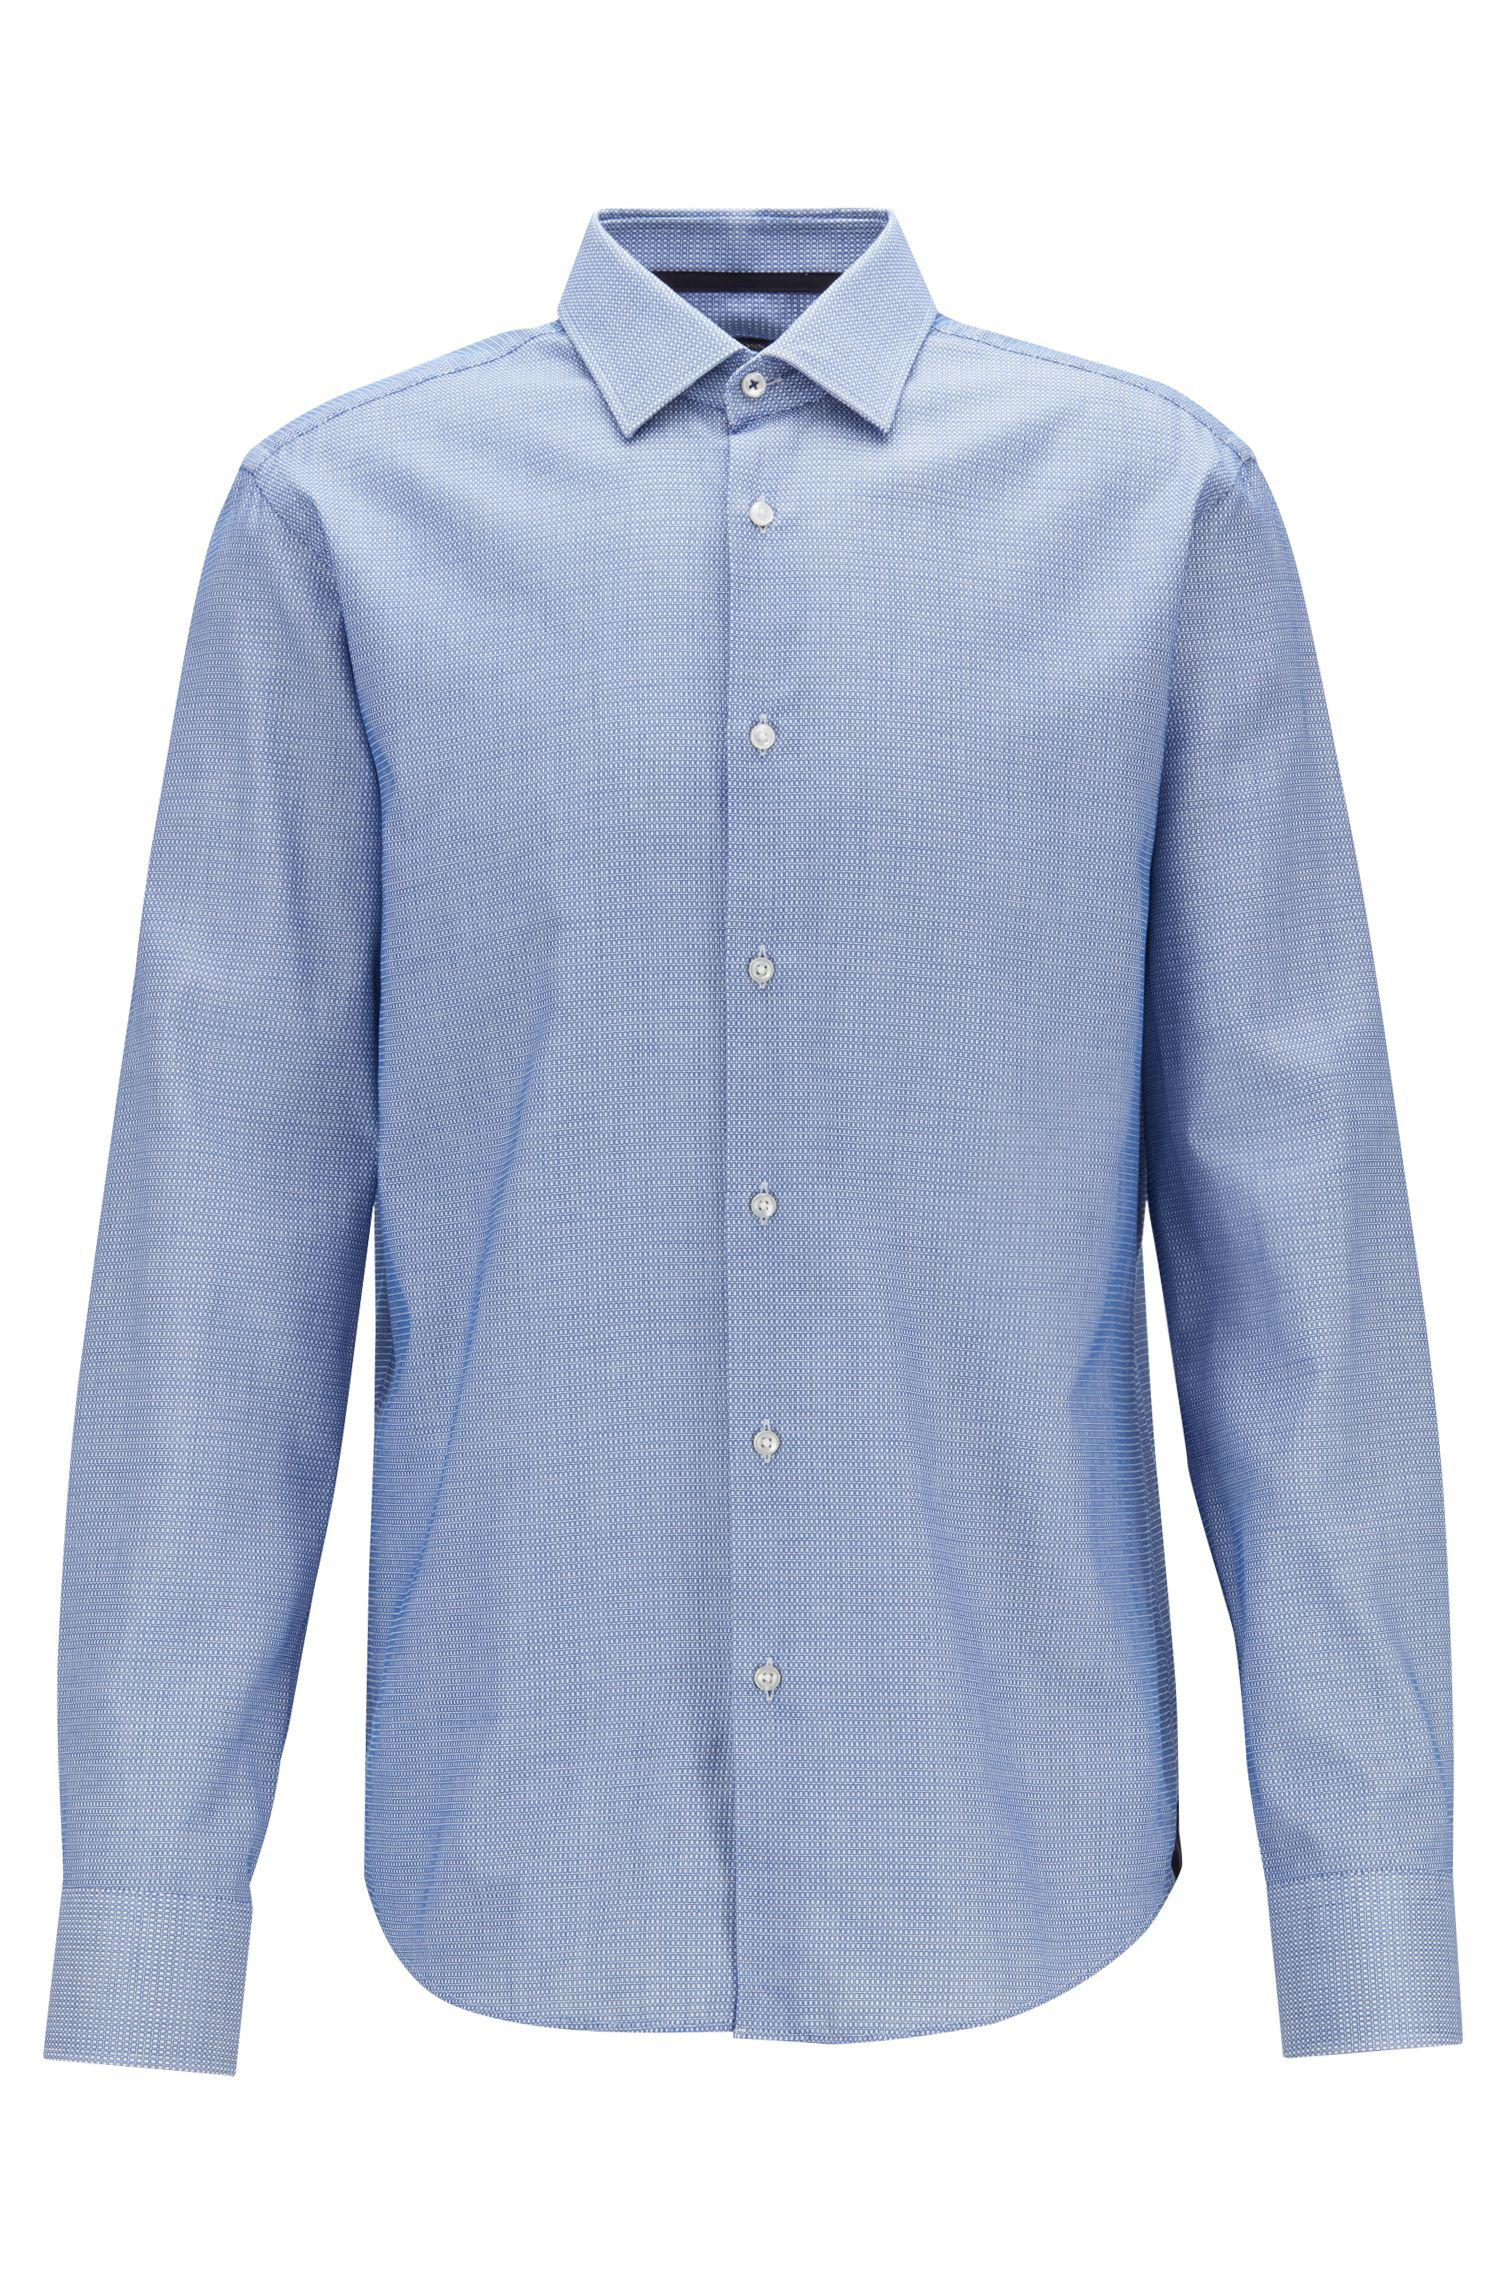 e5b938a80f71 BOSS Regular-fit Shirt In Cotton With Square Micro Structure in Blue ...